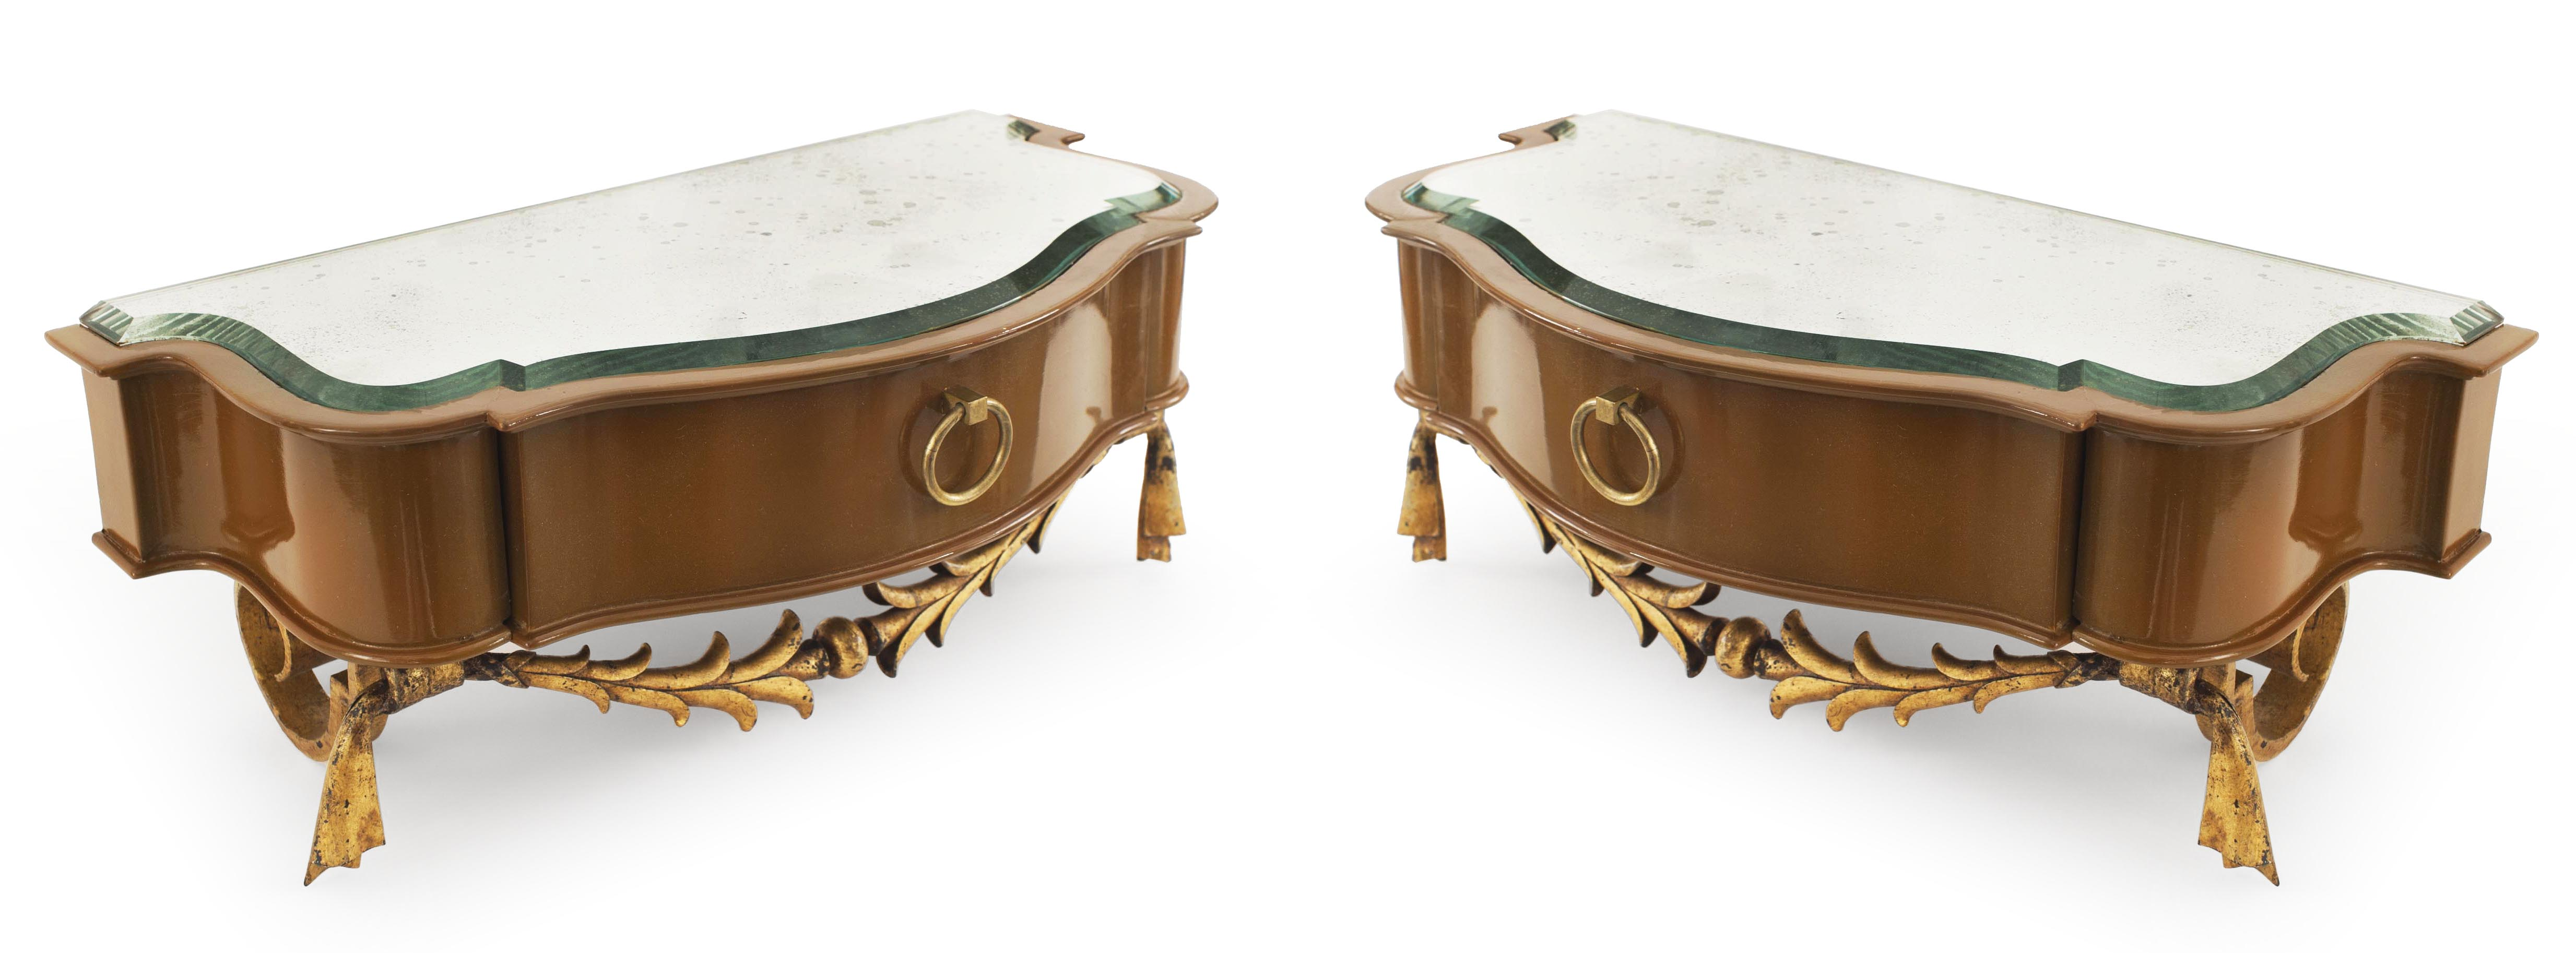 French Mid-Century Lacquered Diminutive Bracket Console Tables